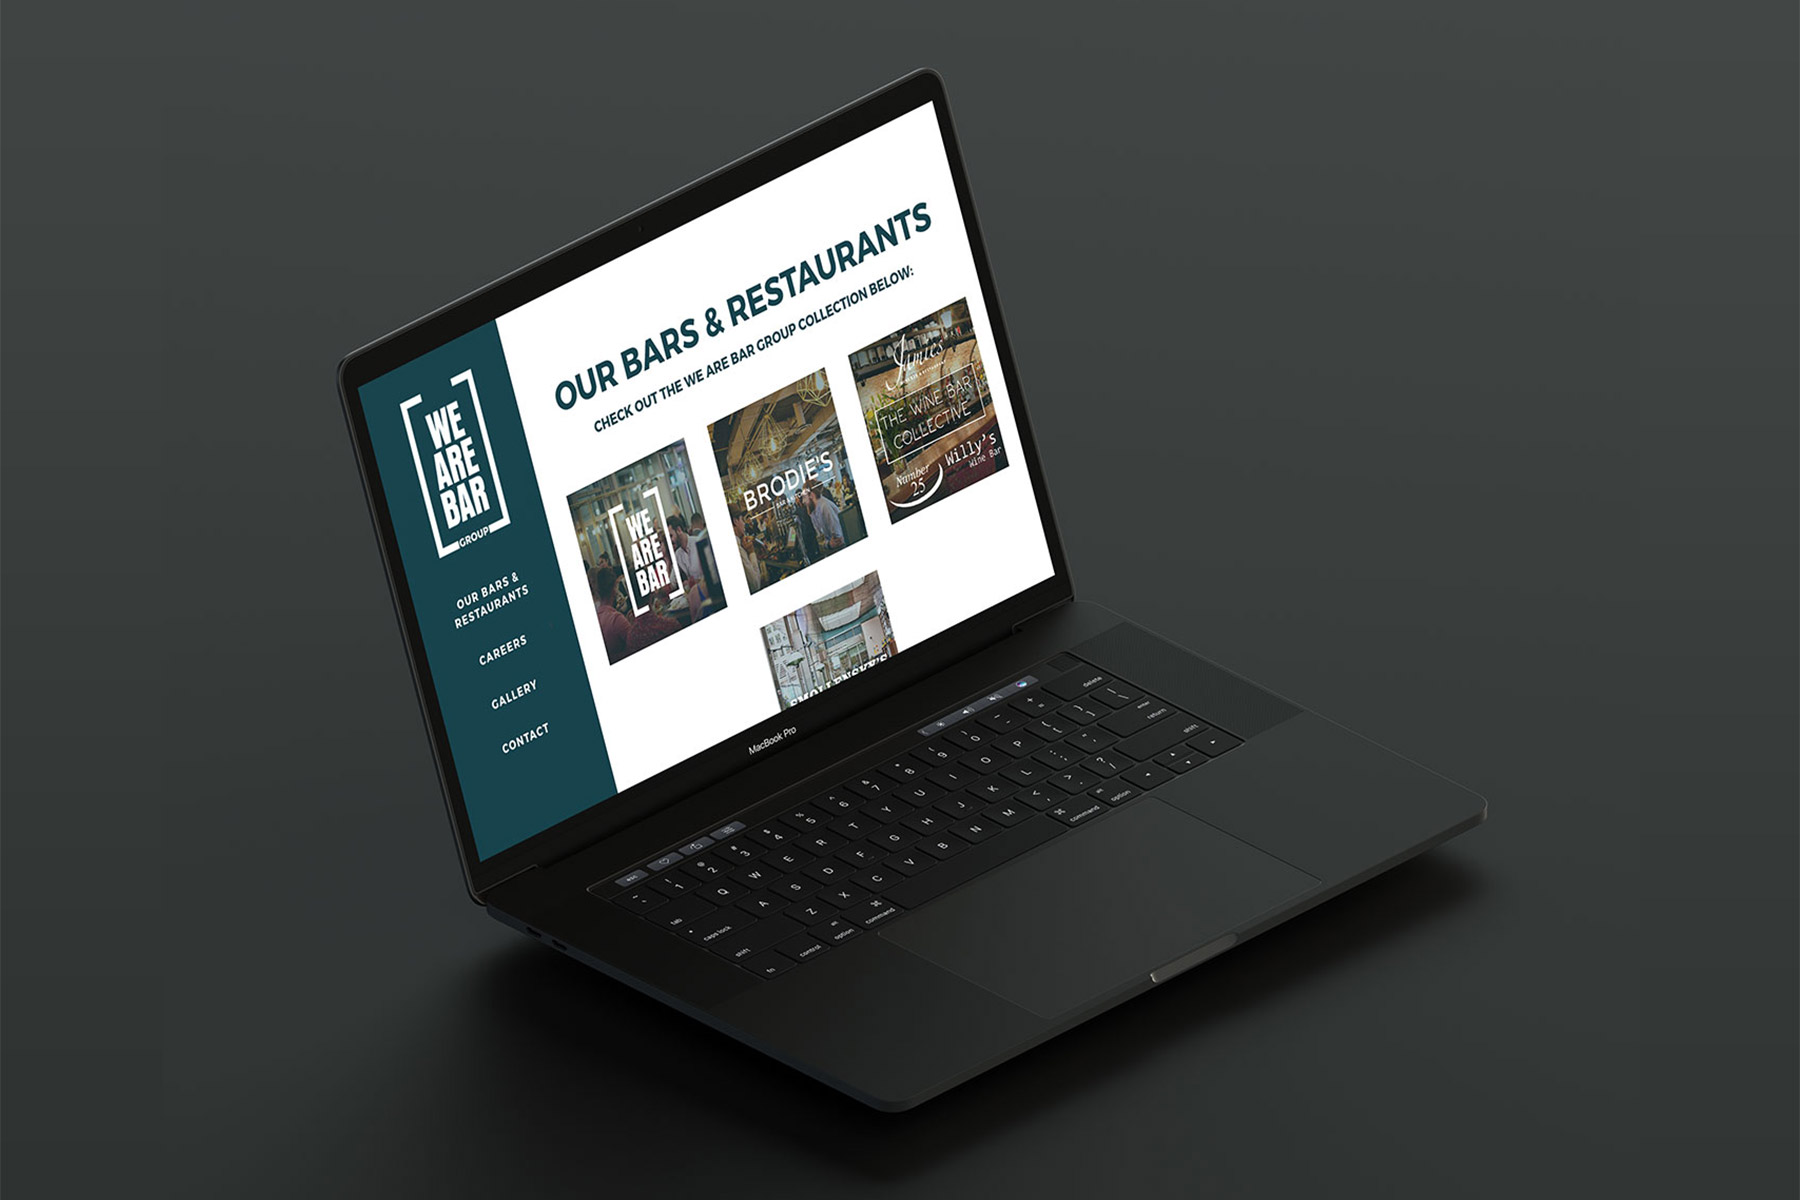 we are bar group | web design - wab macbook - We Are Bar Group | Web Design